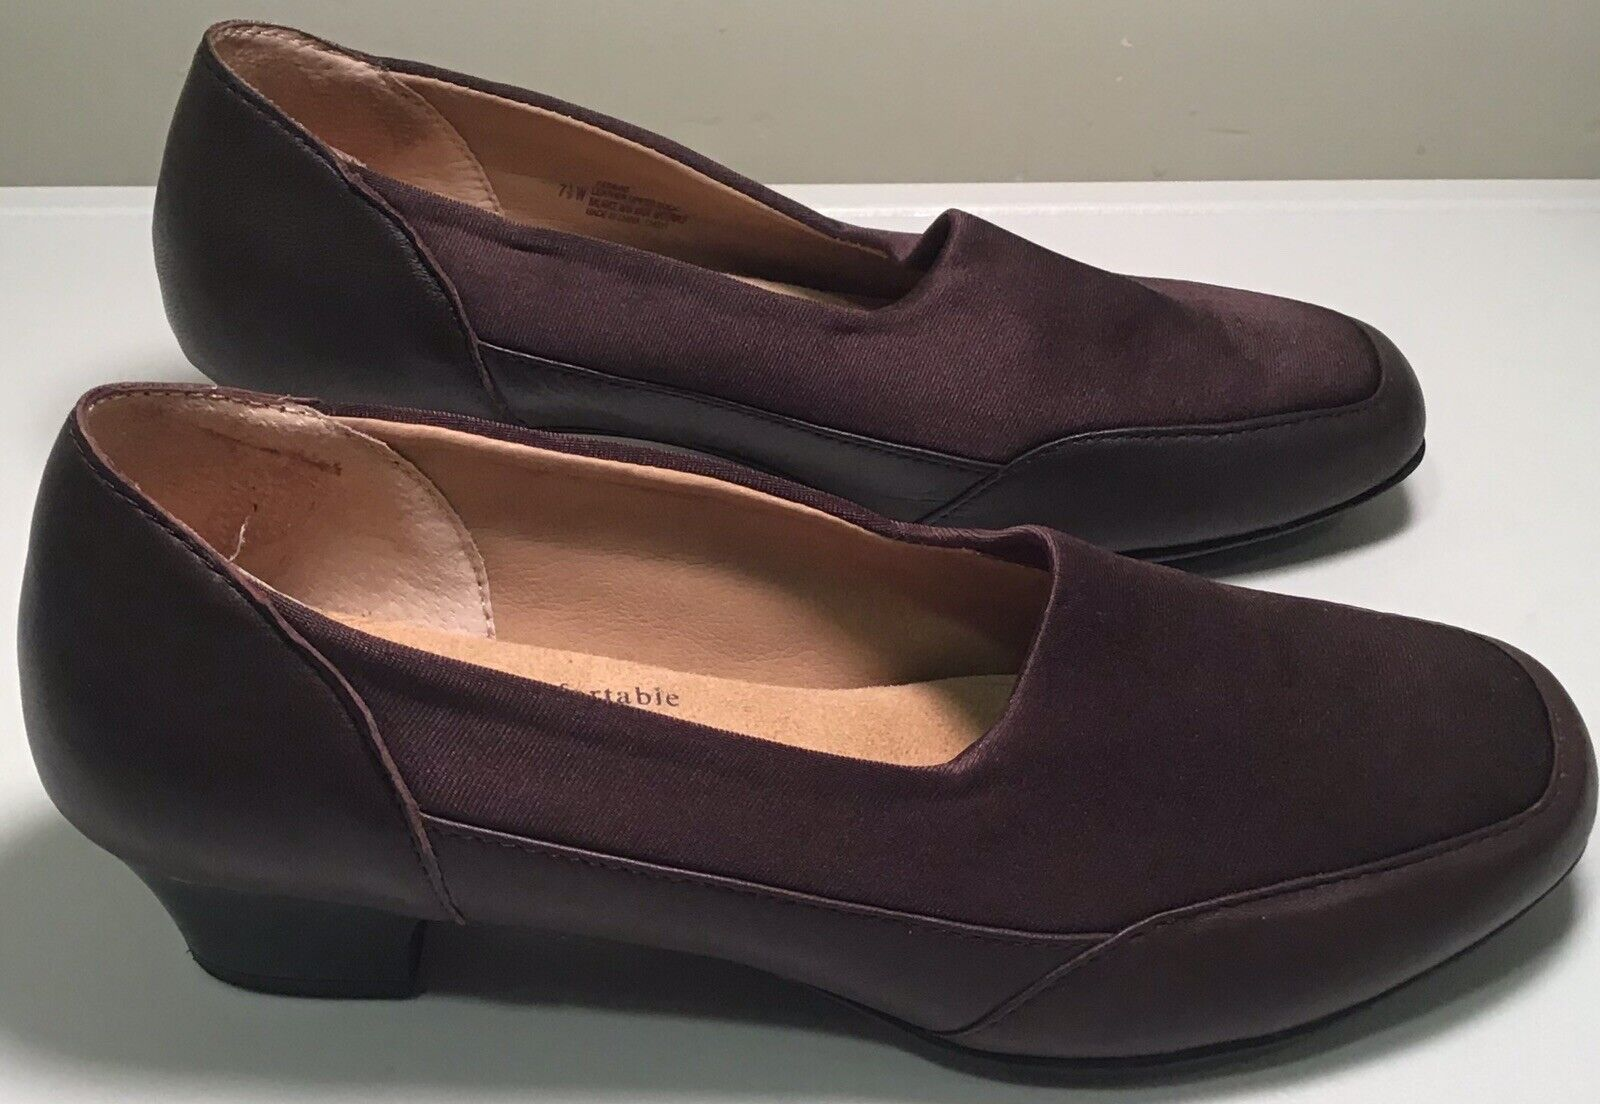 SOFTSPOTS SANTINA Women's Brown Leather Heel Loafer Shoes Size 7.5 Wide EUC